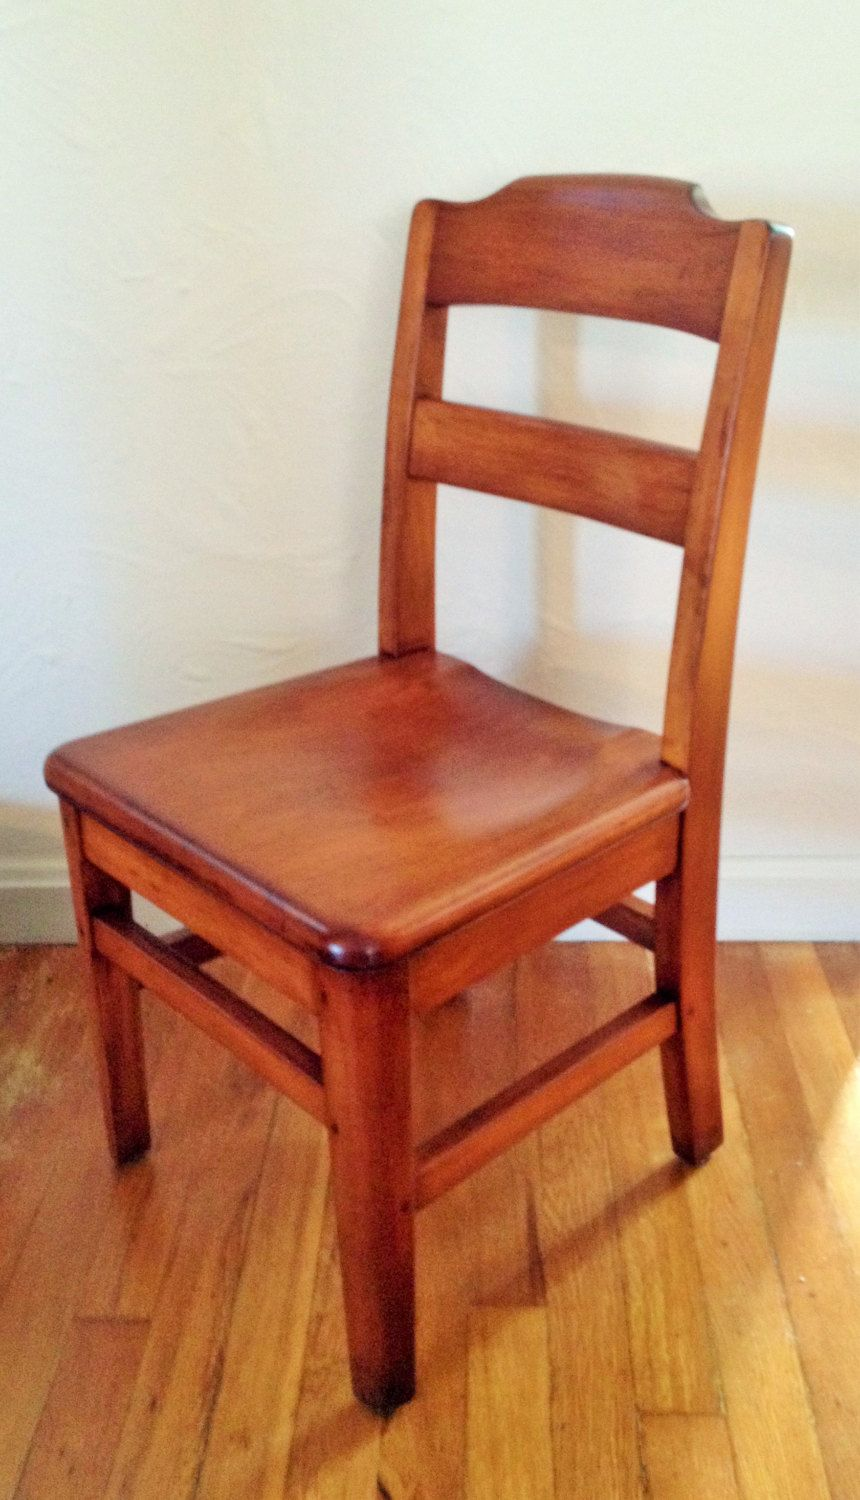 Vintage W.H. Gunlocke Chair Company Childrenu0027s School Desk Chair By  SHOPtulaVintage On Etsy